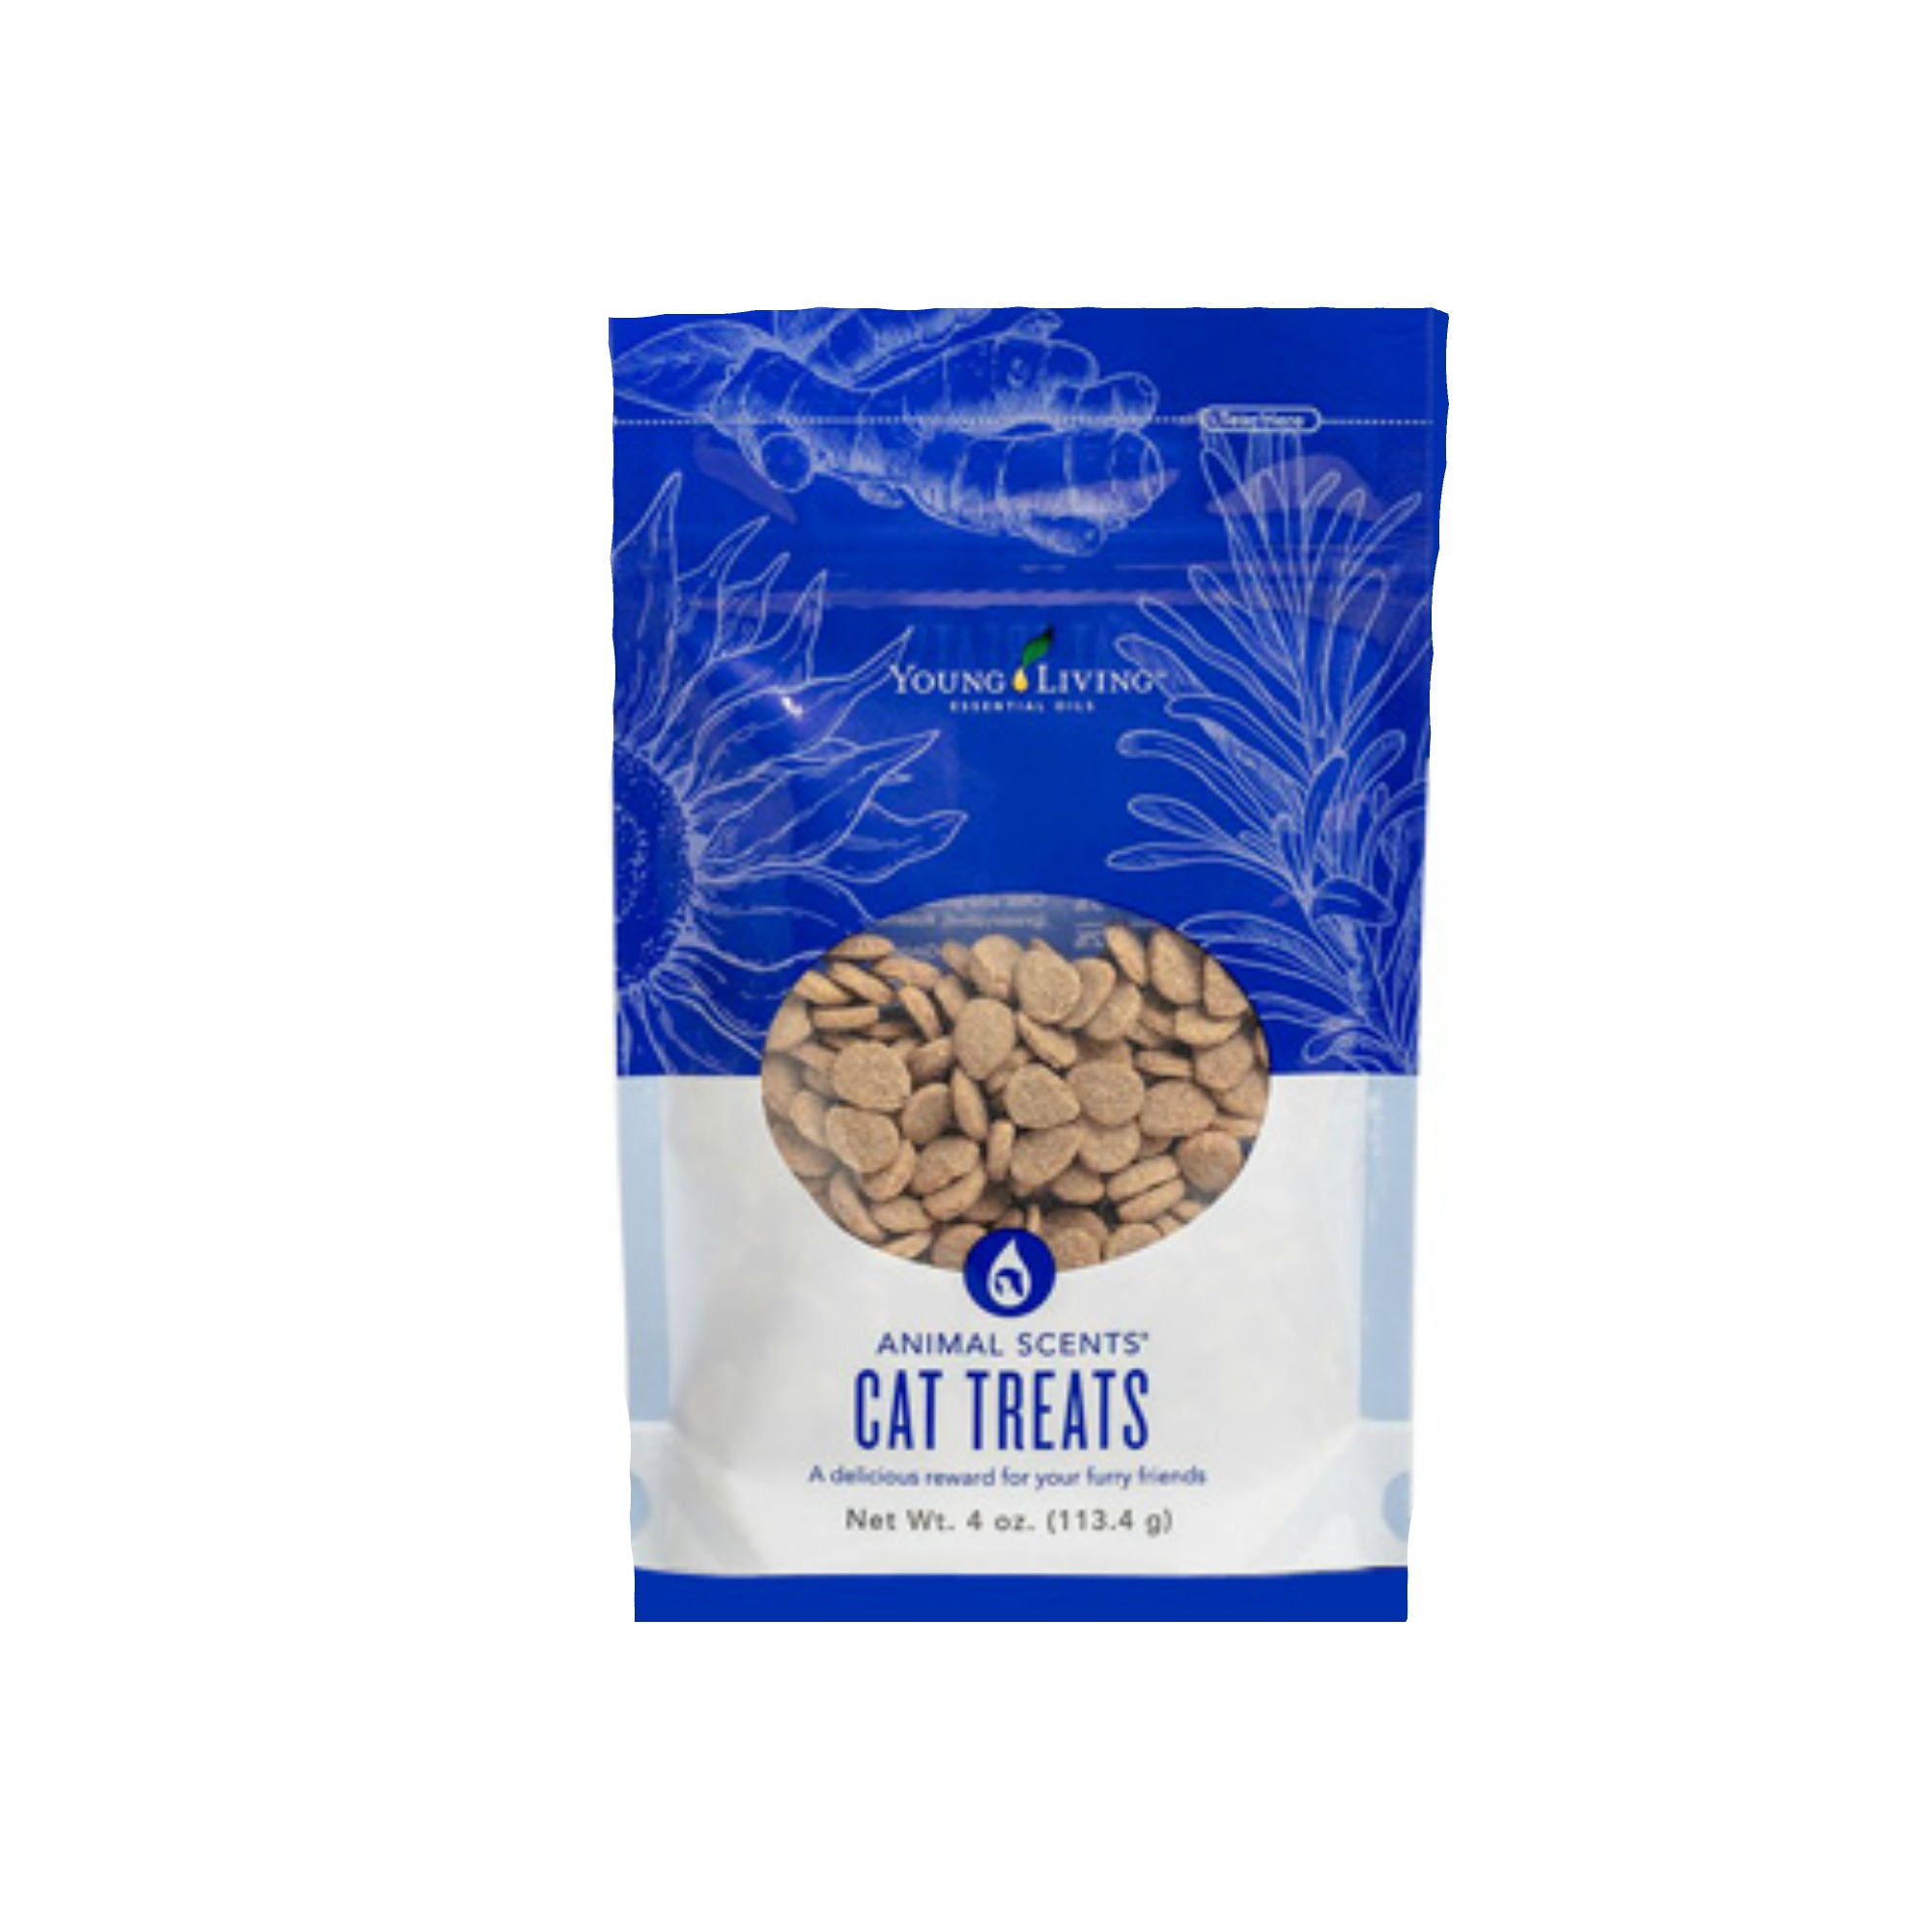 ANIMAL SCENTS CAT TREATS    Animal Scents Cat Treats are tasty, crunchy, and convenient treats for your cat. These cat treats are formulated without any artificial colors, flavors, preservatives, or added fillers. They contain the highest quality, naturally derived ingredients. Animal Scents Cat Treats are stored in convenient, 4-ounce zipper pouches to help seal in freshness. A portion of all proceeds from Animal Scents products goes to support Vital Ground, a nonprofit organization dedicated to protecting the habitat of grizzly bears and other wide-roaming wildlife.   Click here   to learn more about this product.